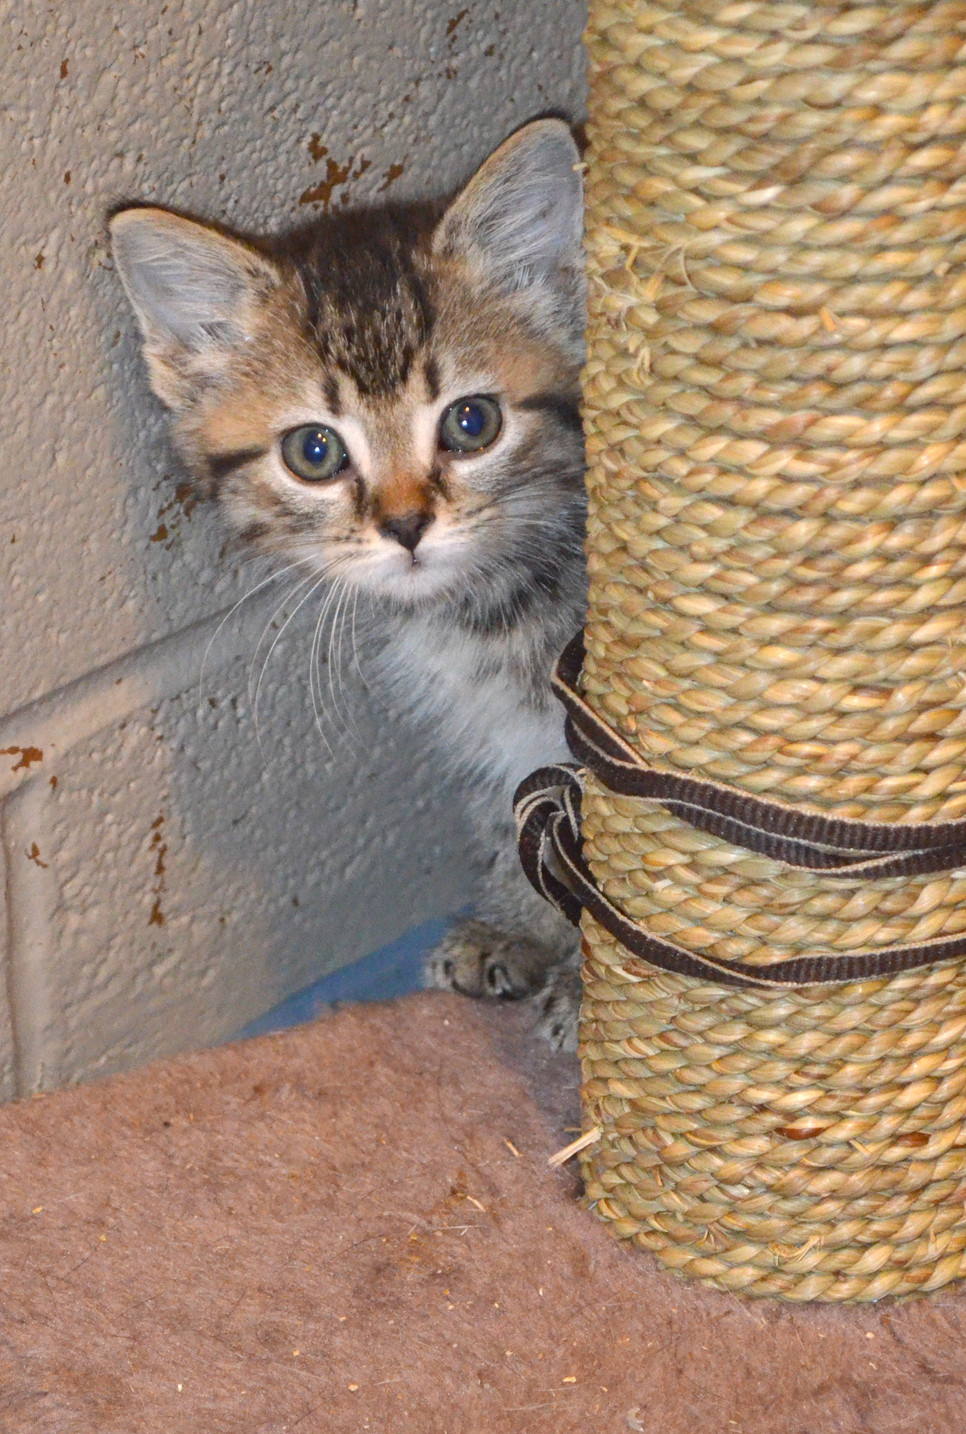 'KITTEN SEASON' at the Woodford Humane Society means about 70 percent of the more than 160 animals in its care last Thursday were felines, according to executive director Katie Hoffman. (Photo by Bob Vlach)